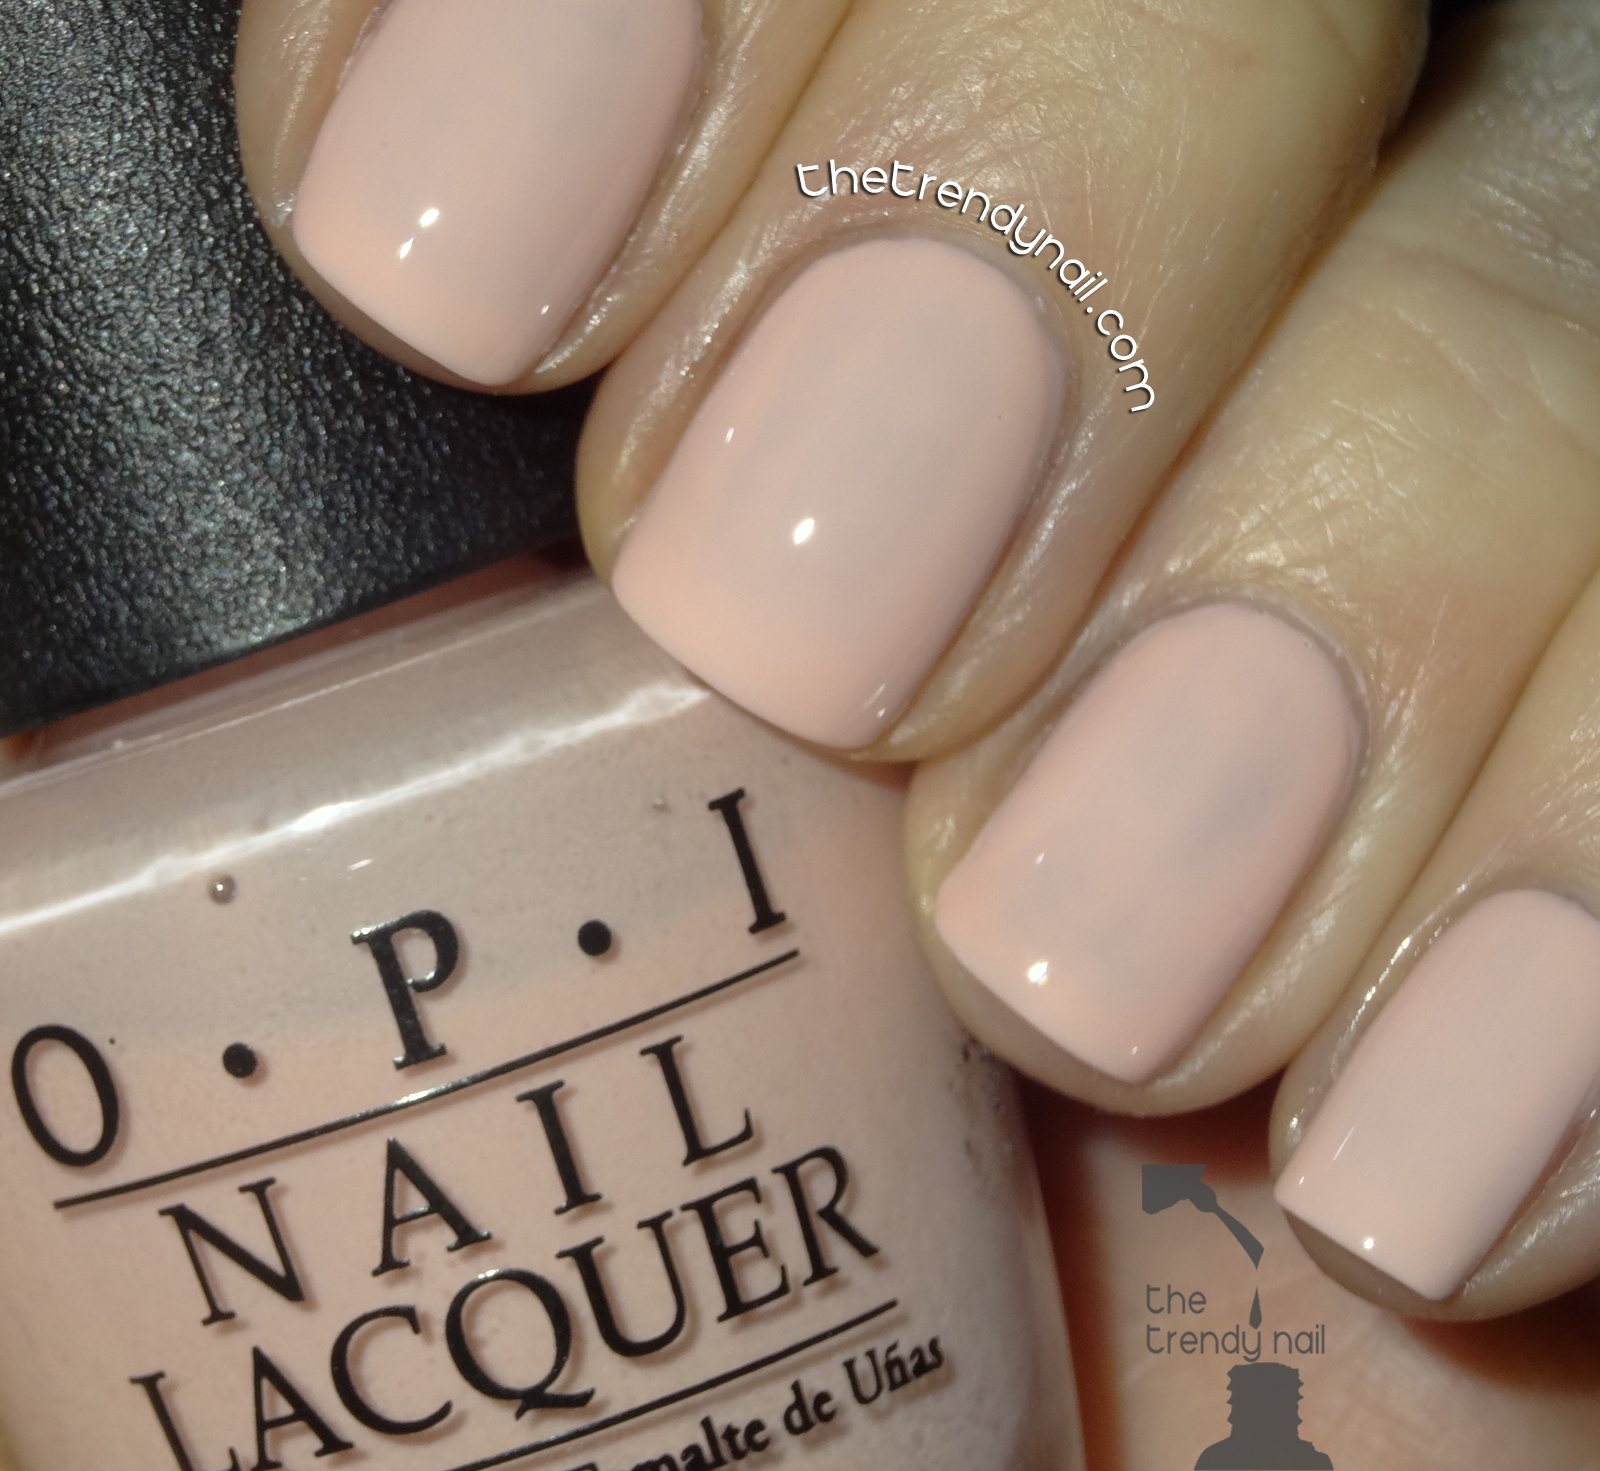 Fabuleux NAIL POLISH REVEALED: SWEET HEART BY OPI - The Trendy Nail ER92